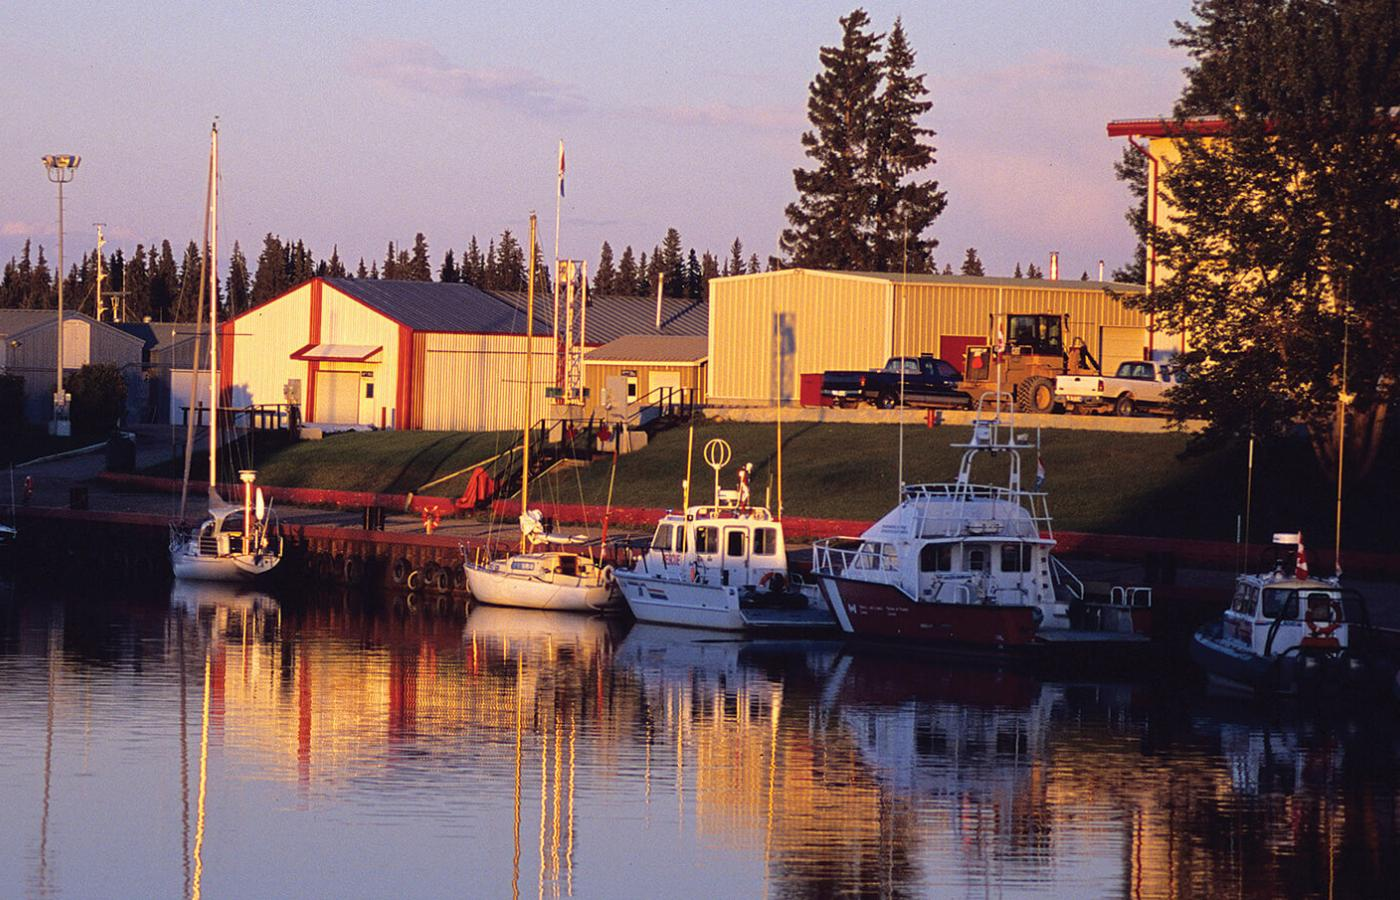 Boats on the water in Hay River